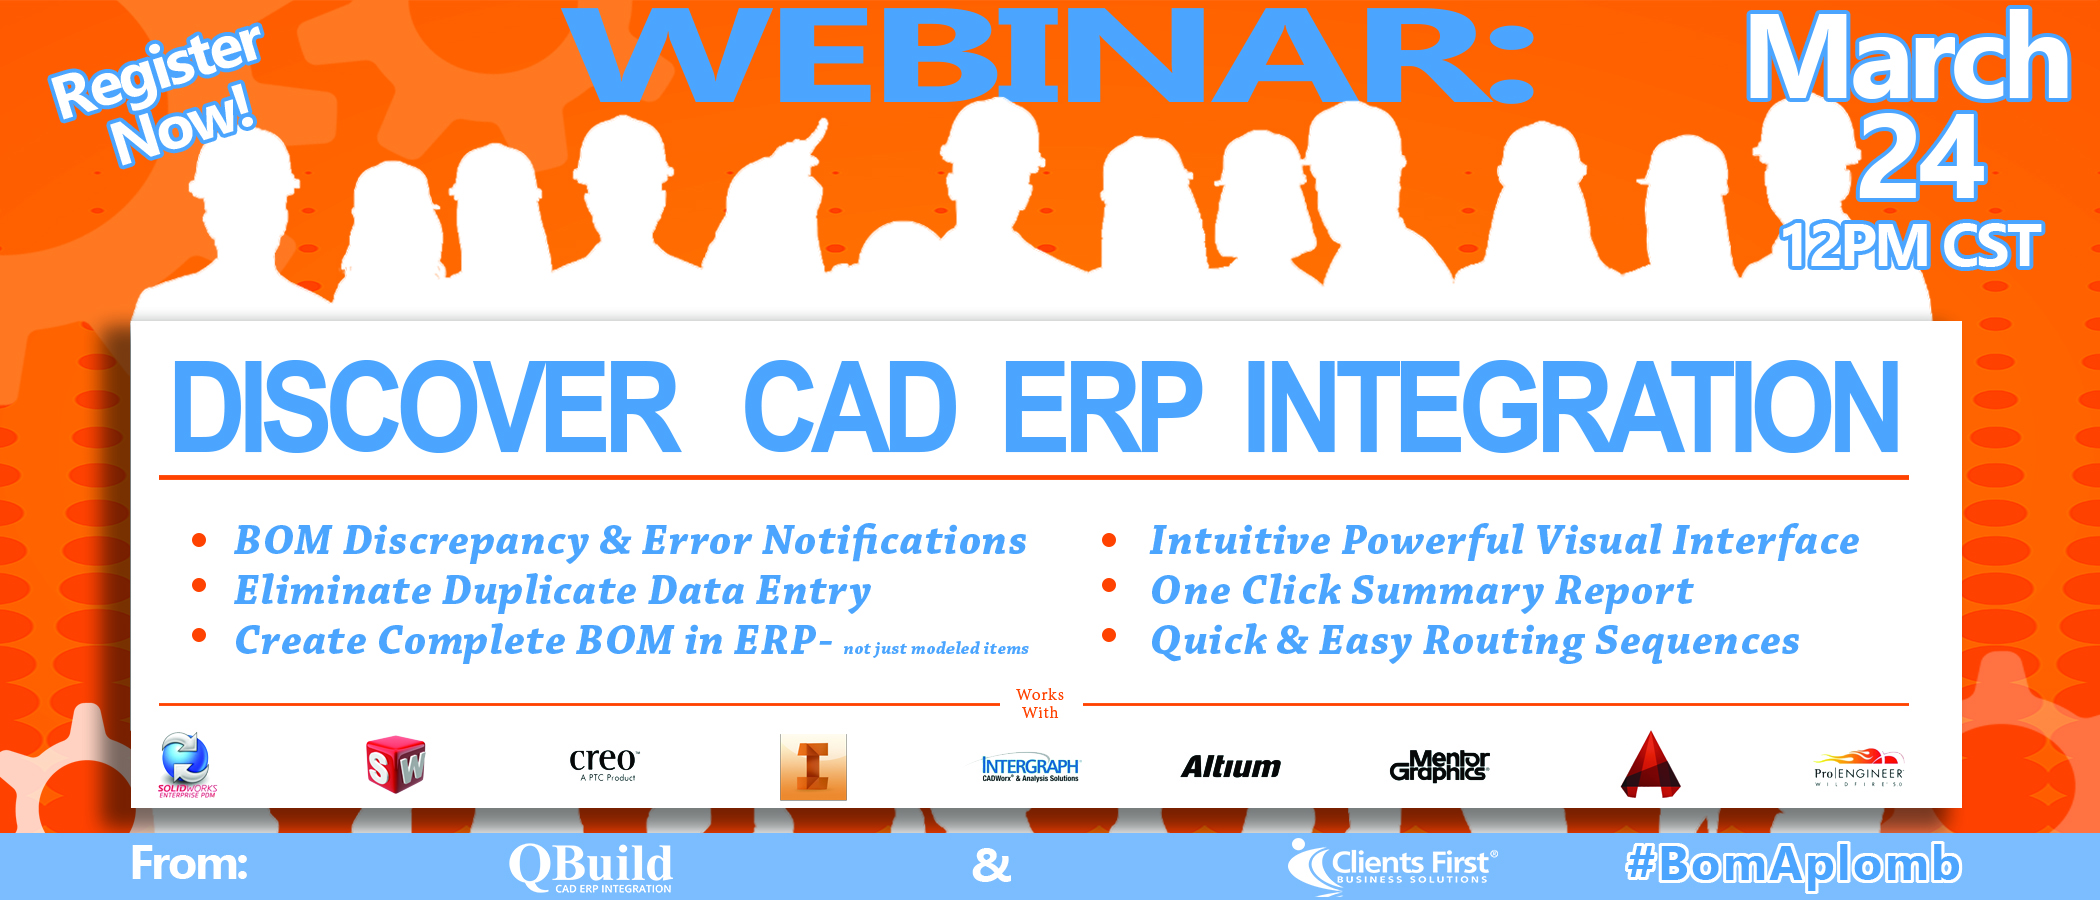 Clients First TX & Qbuild CAD Webinar Link